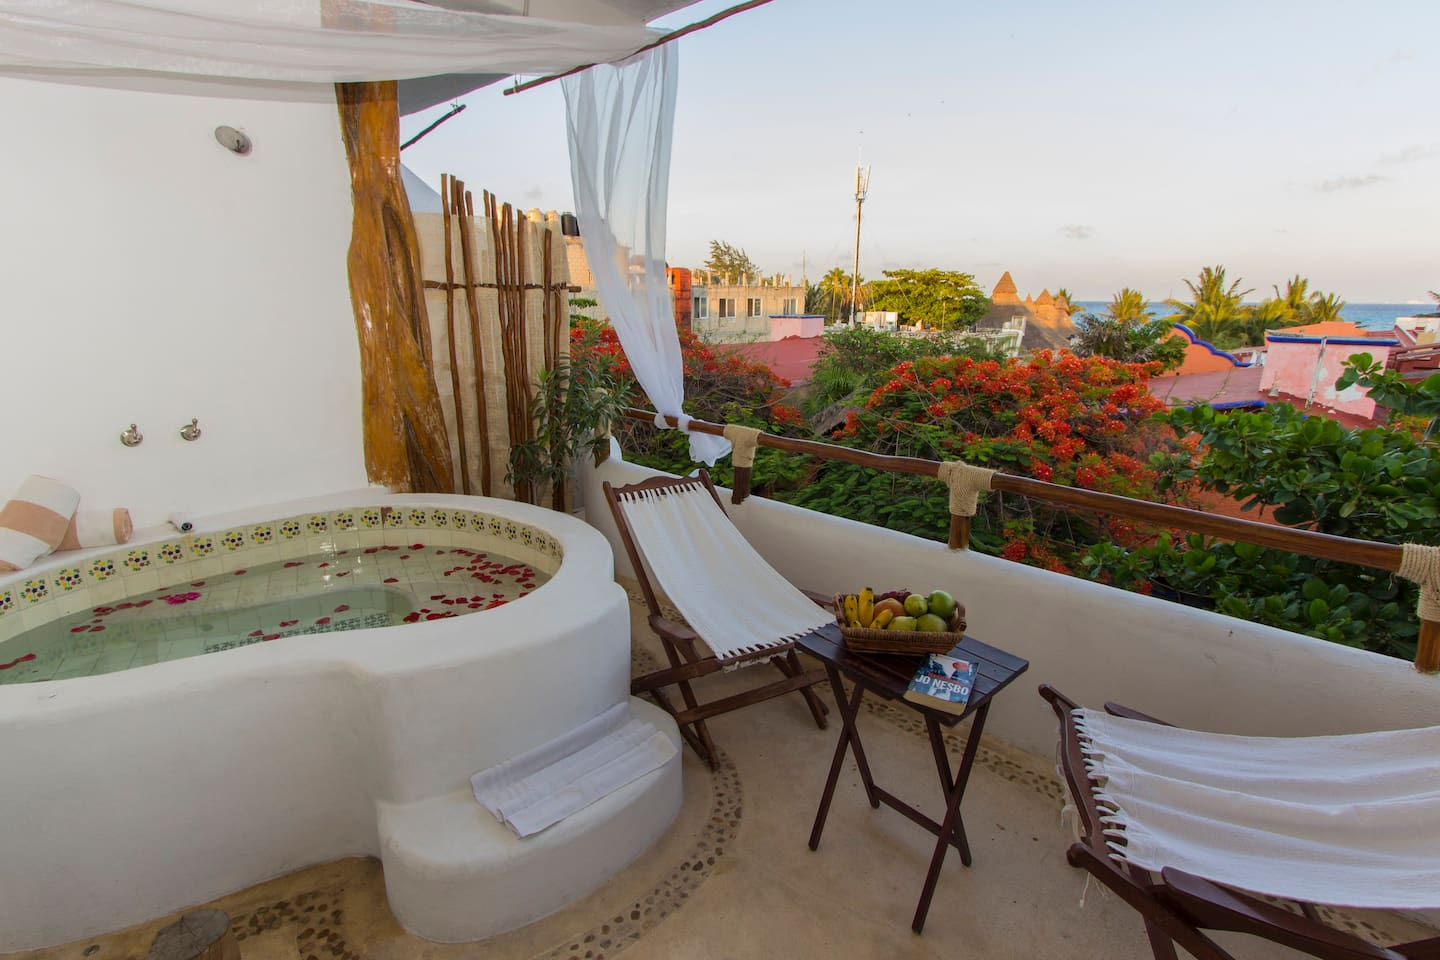 Your private terrace with ocean view and hot tub!